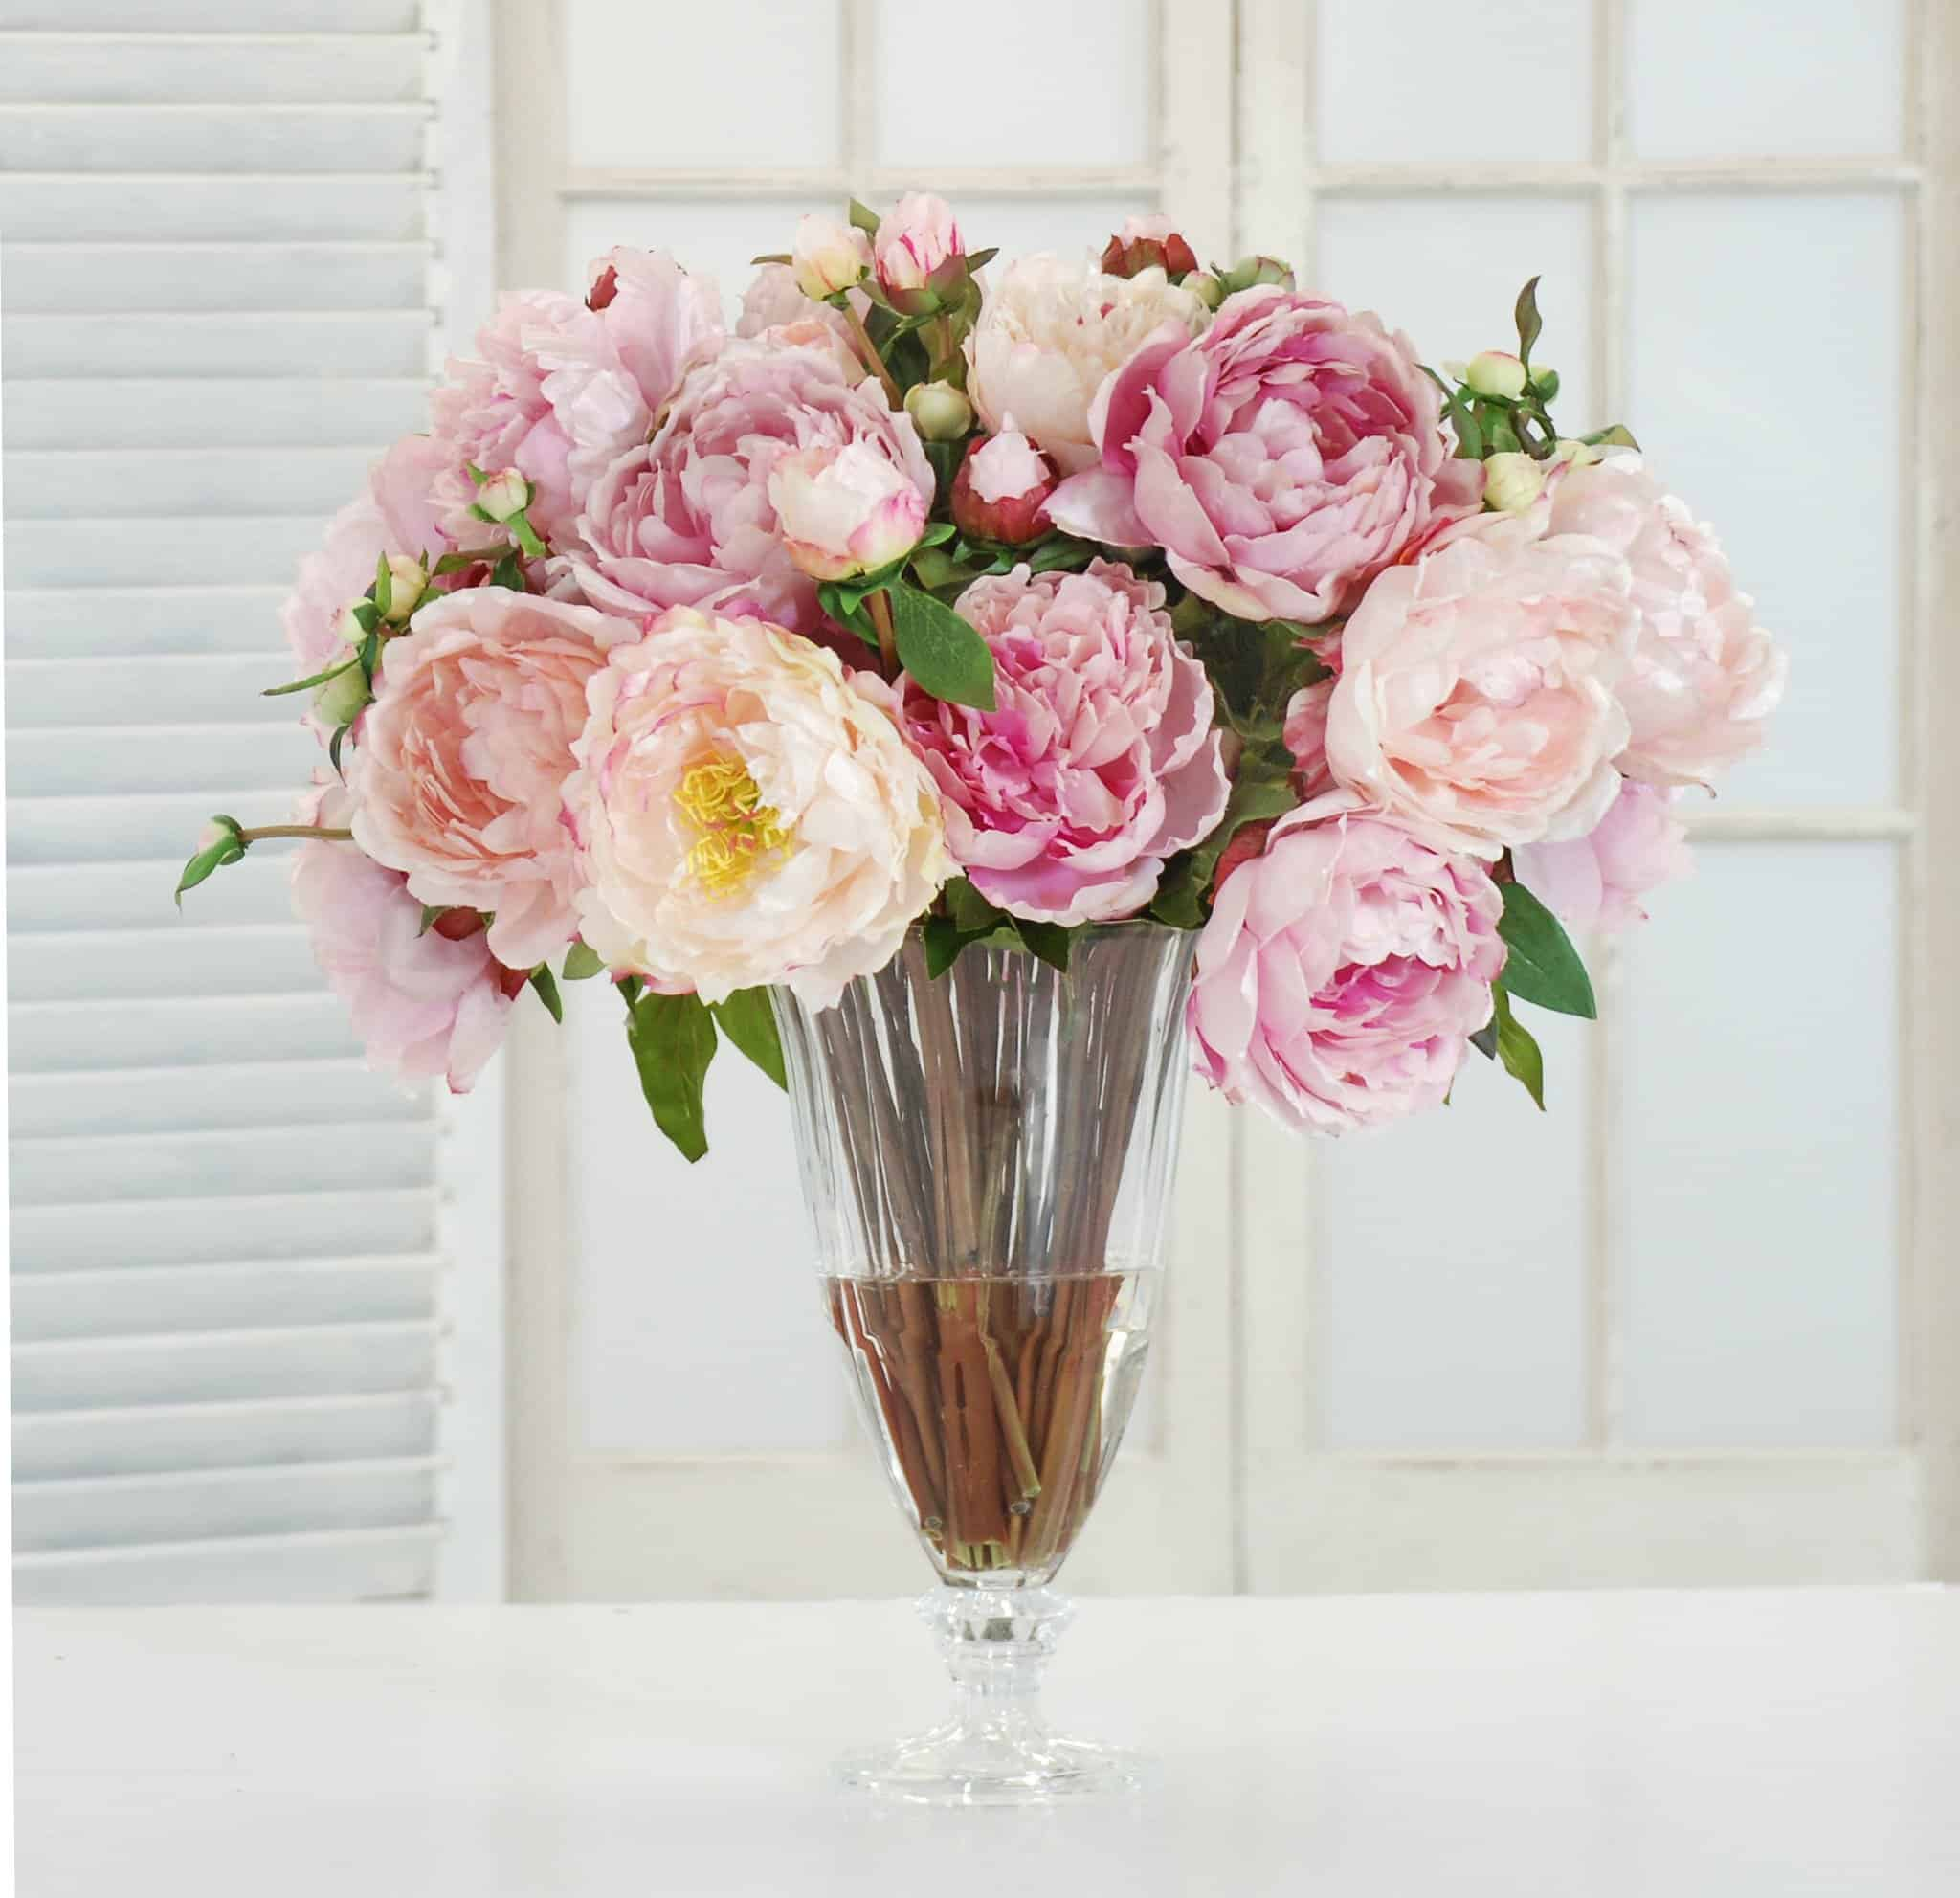 hoose different shades of pink for your flower arrangements as well as add white ones to make the different shades stand out.